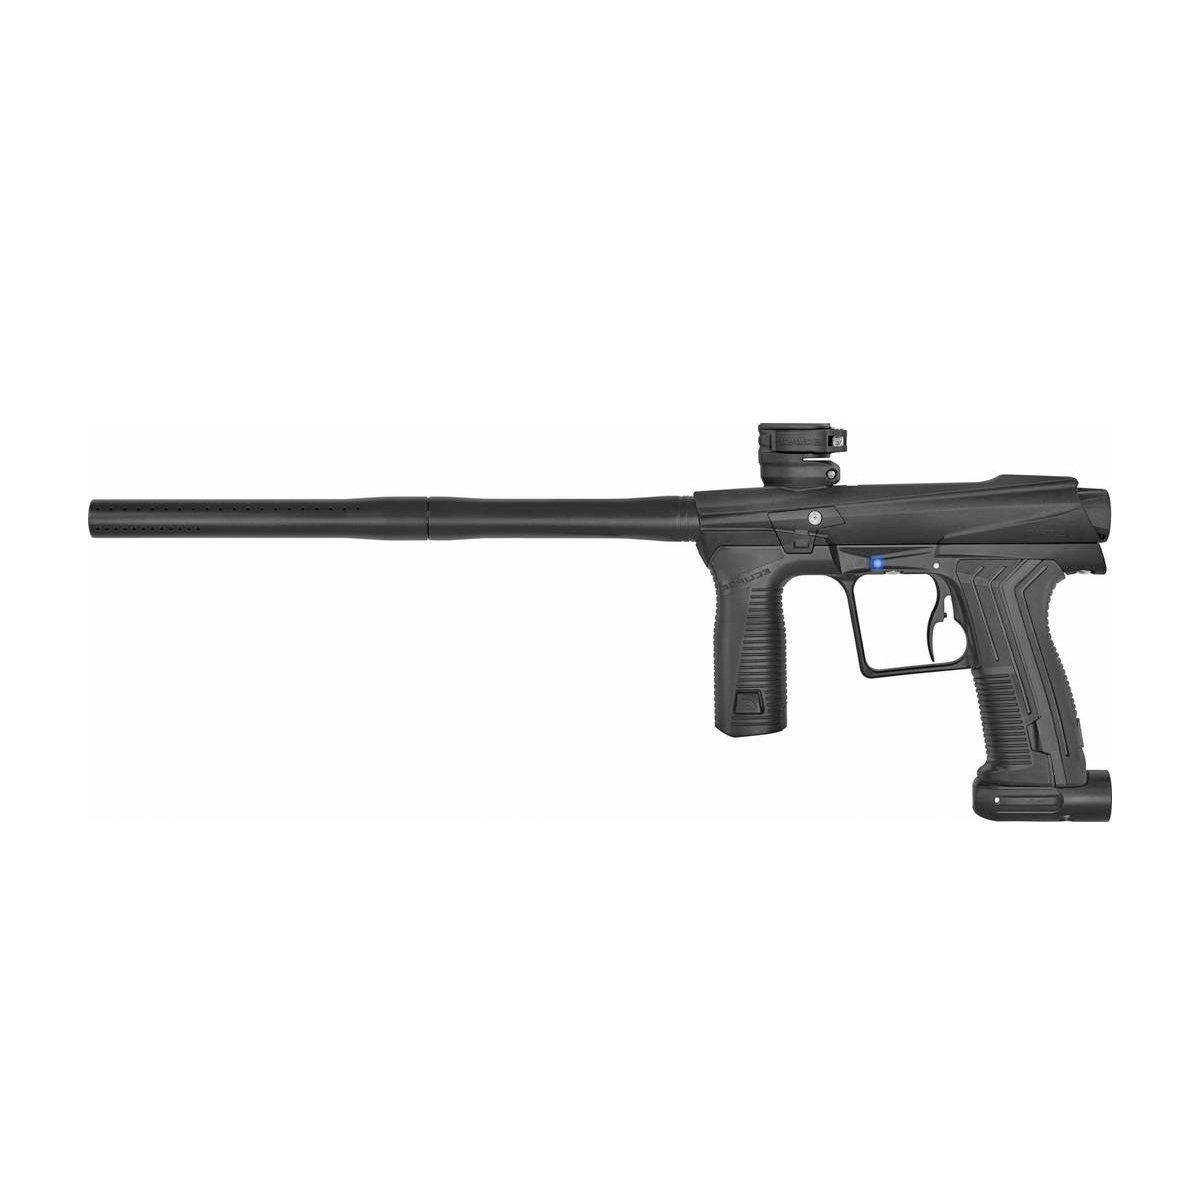 View larger image of Eclipse Etha2 .50 Caliber Paintball Gun